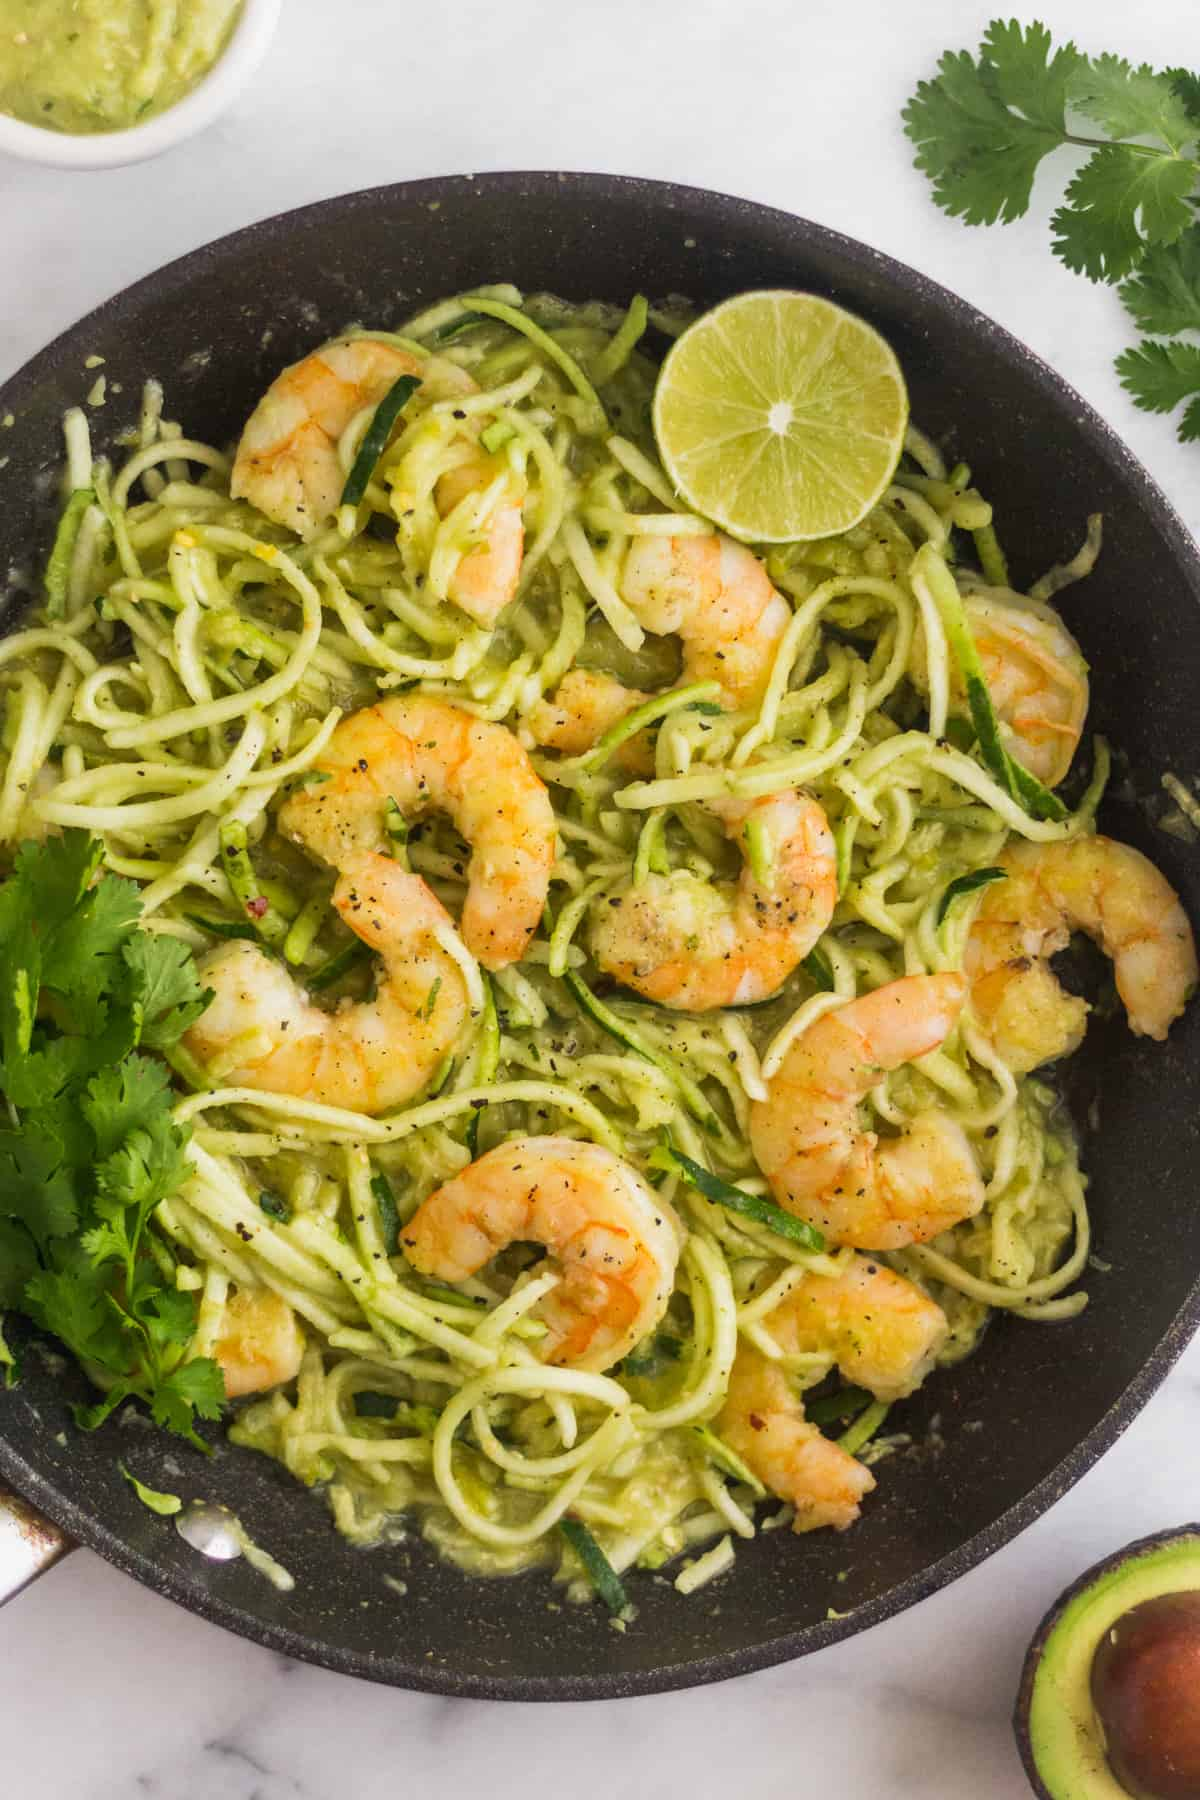 Large sauté pan filled Whole30 Tomatillo Salsa Shrimp Zucchini Noodles garnished with cilantro and lime